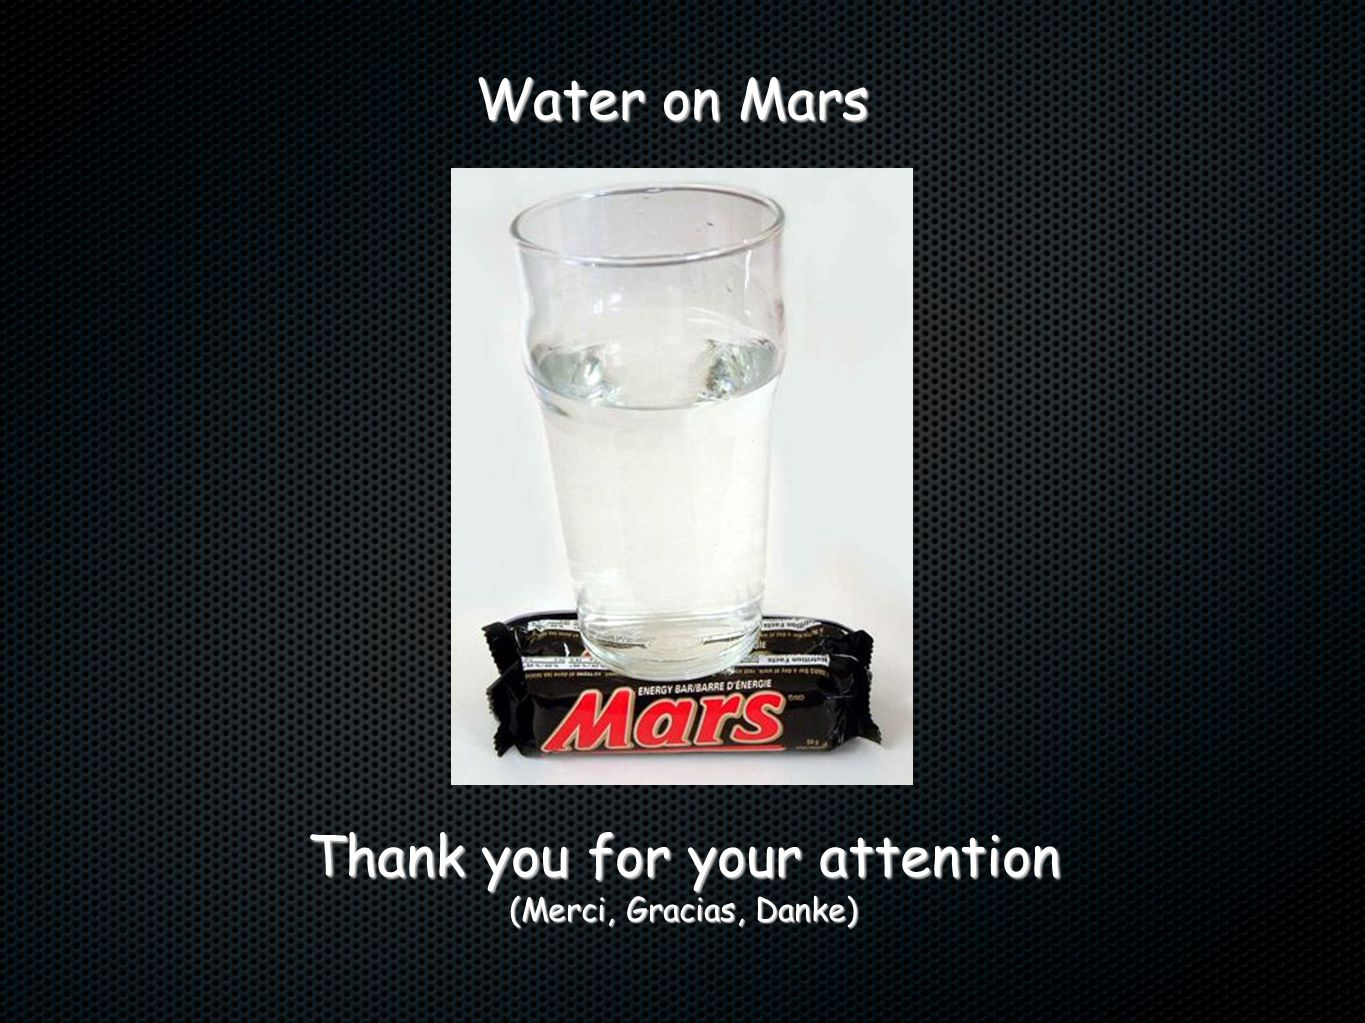 Water on Mars Thank you for your attention (Merci, Gracias, Danke)